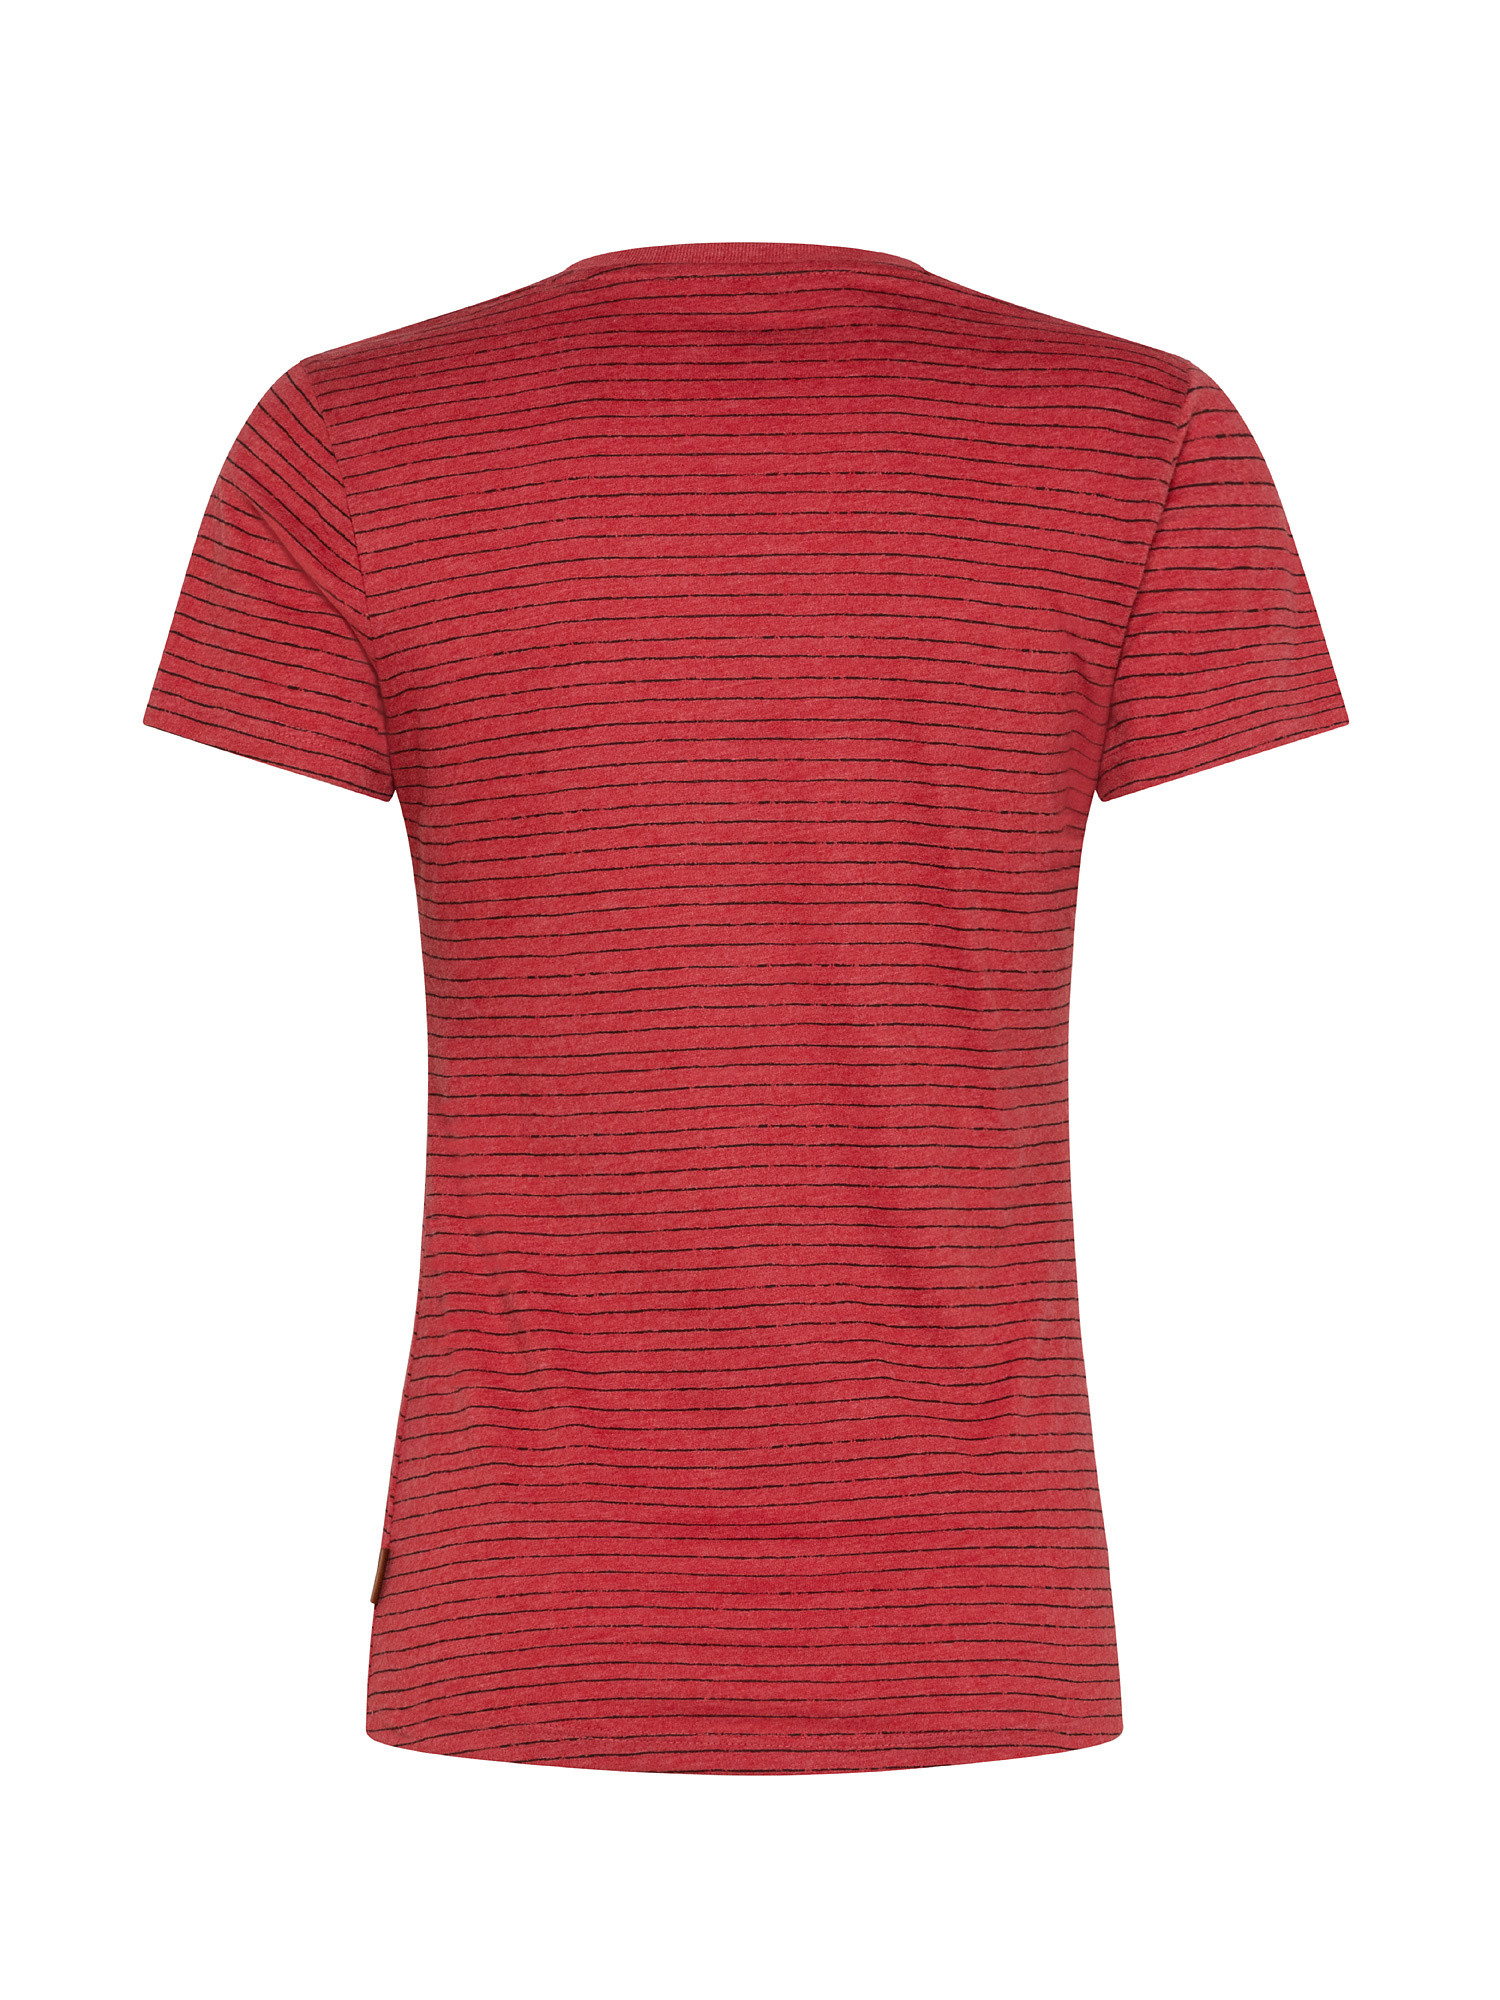 T-Shirt donna Mahsa, Rosso, large image number 1